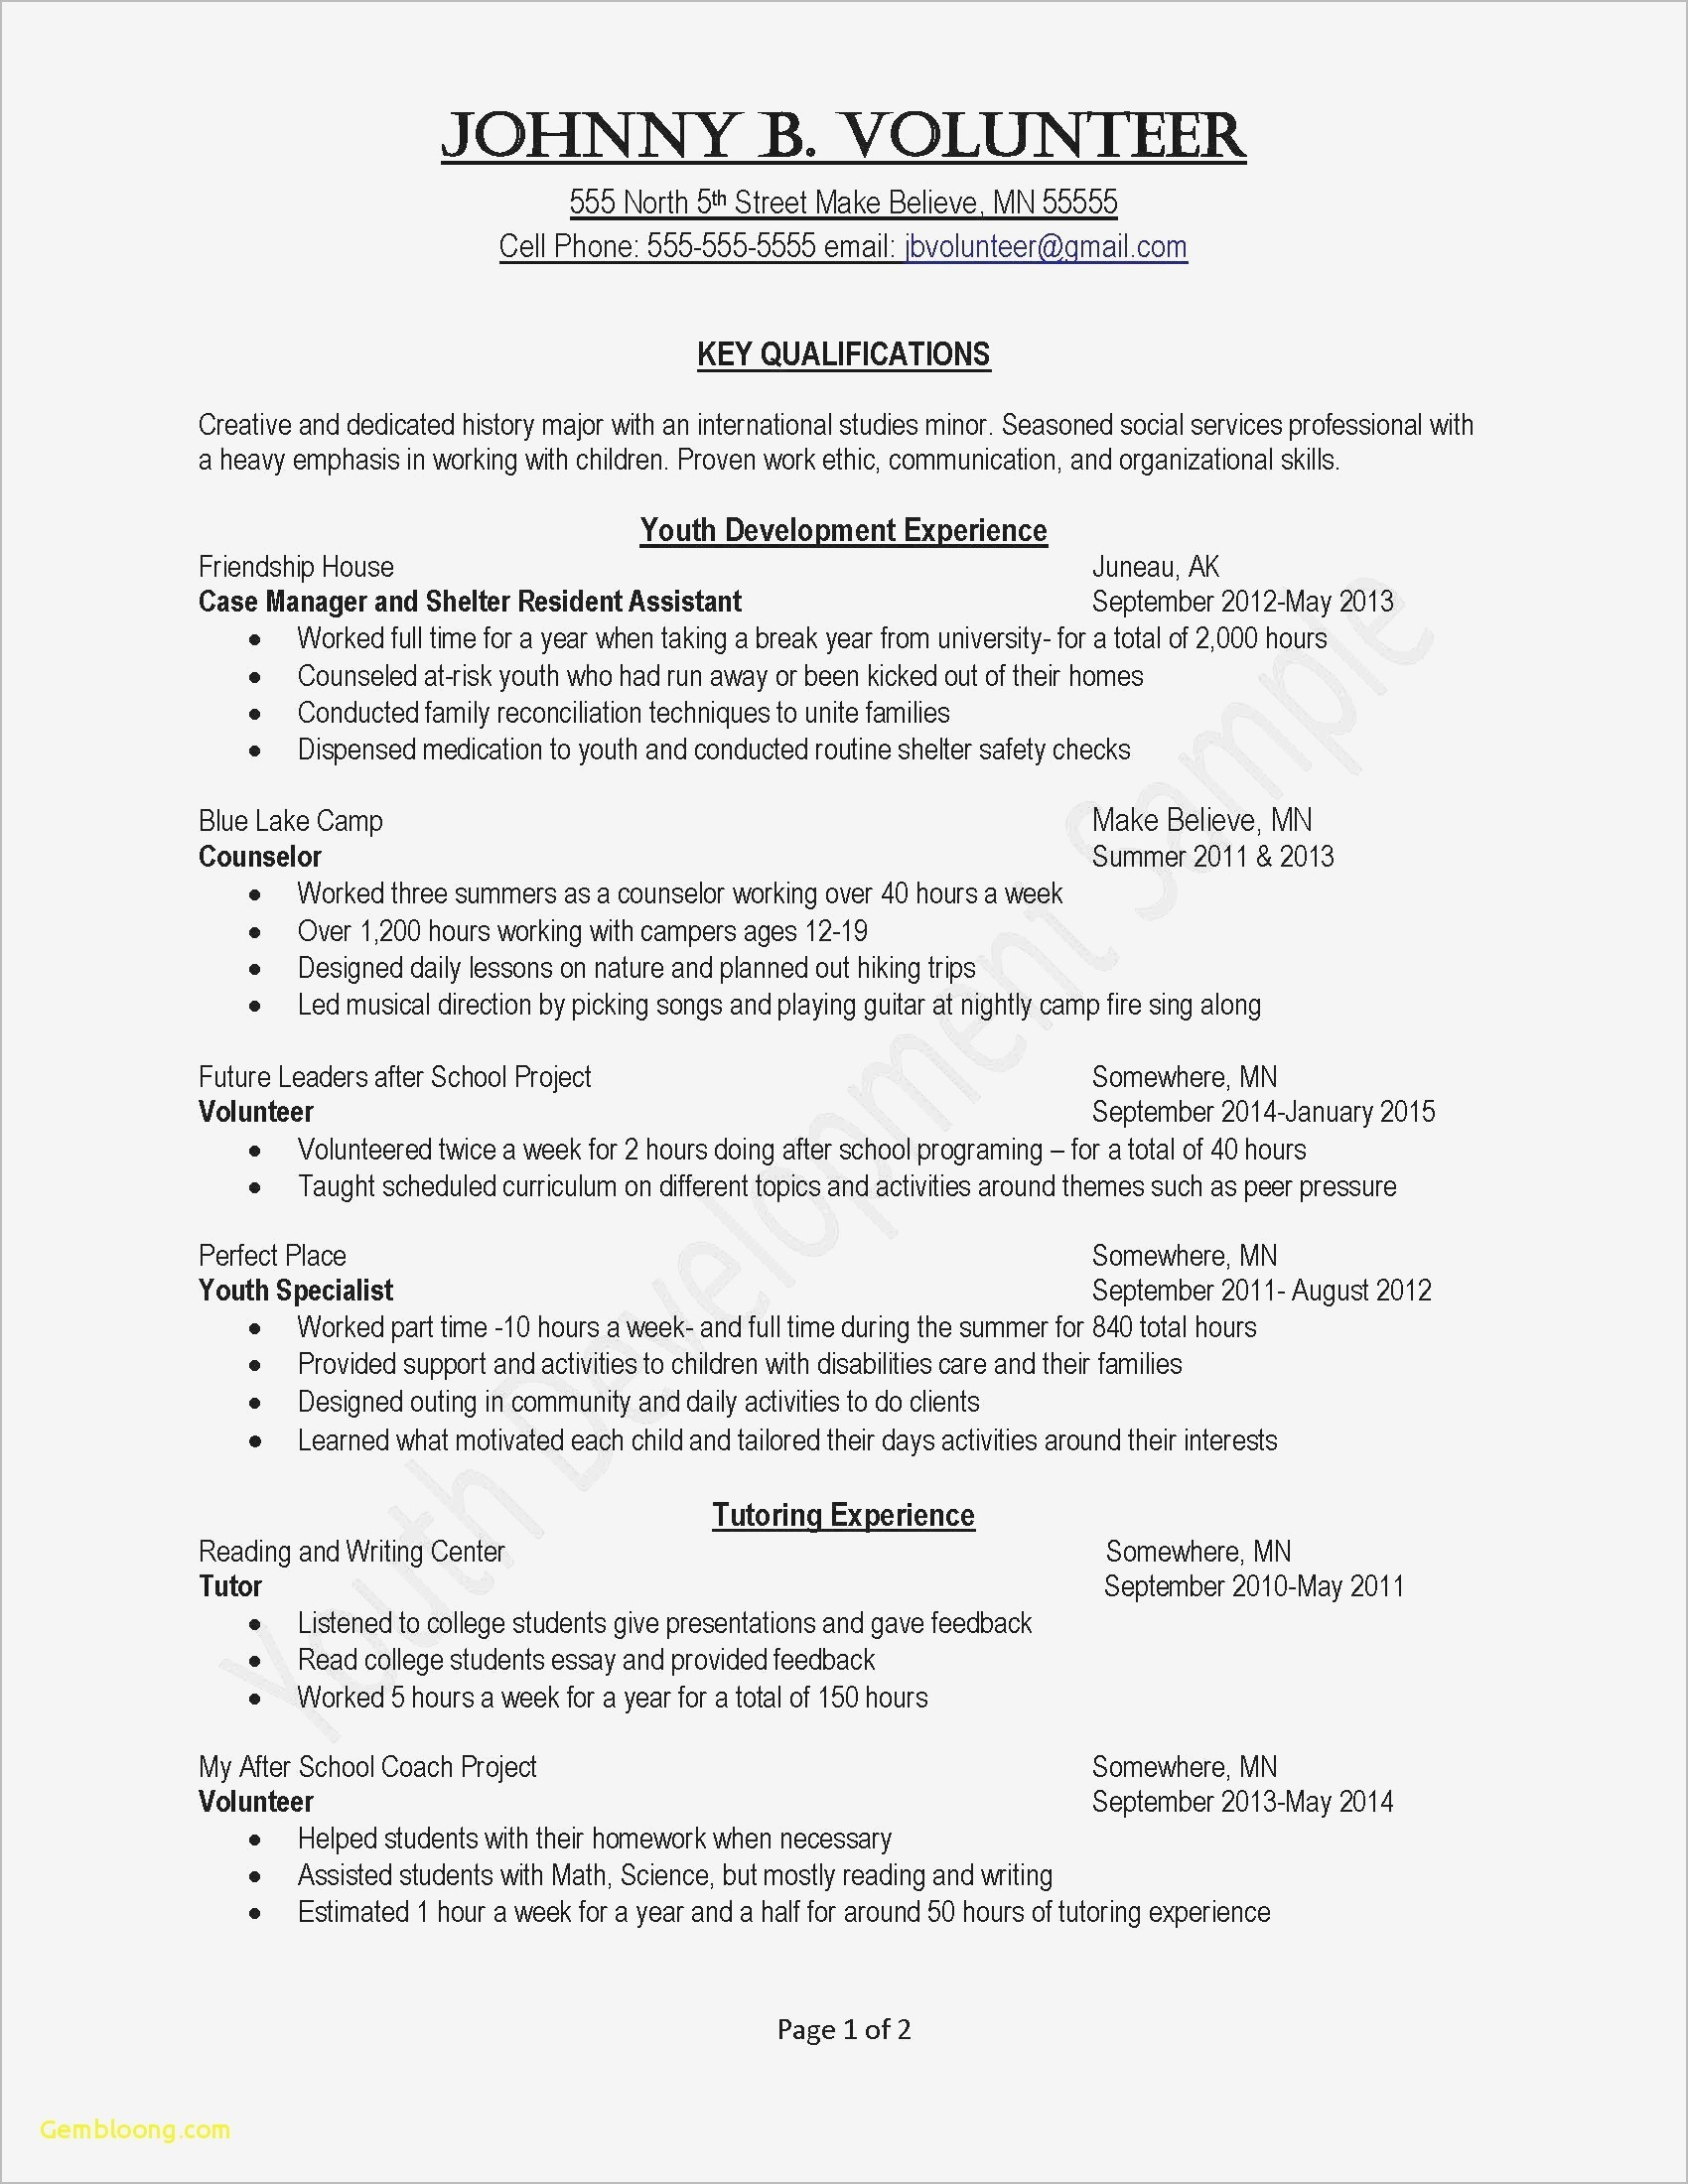 Cover Letter for Teaching Job Template - Writing A Cover Letter for Teaching Position New Job Fer Letter